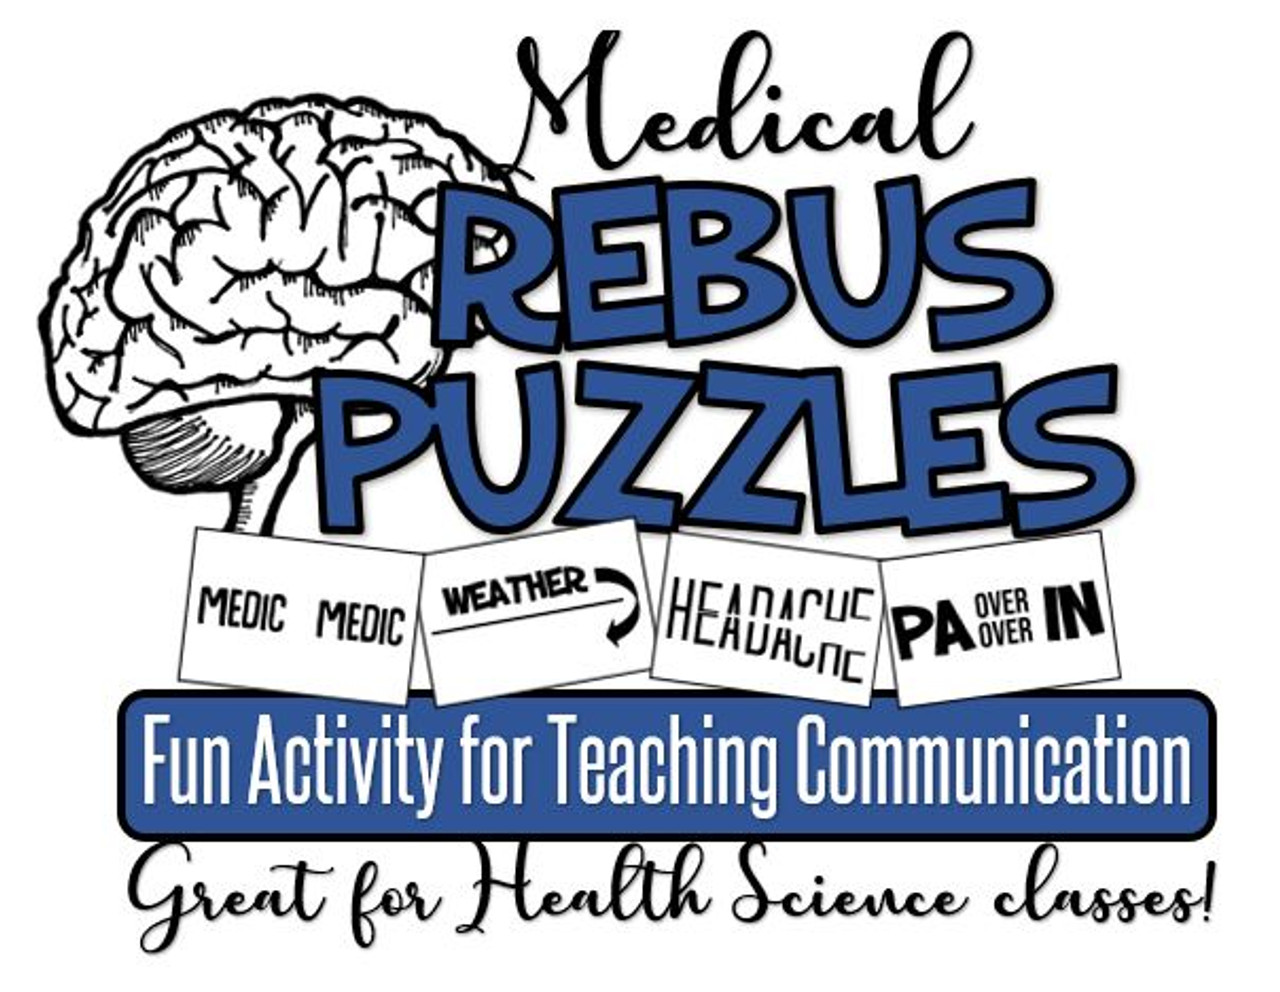 small resolution of Medical Rebus Puzzles- Great for teaching Communications in Health Science!  - Amped Up Learning